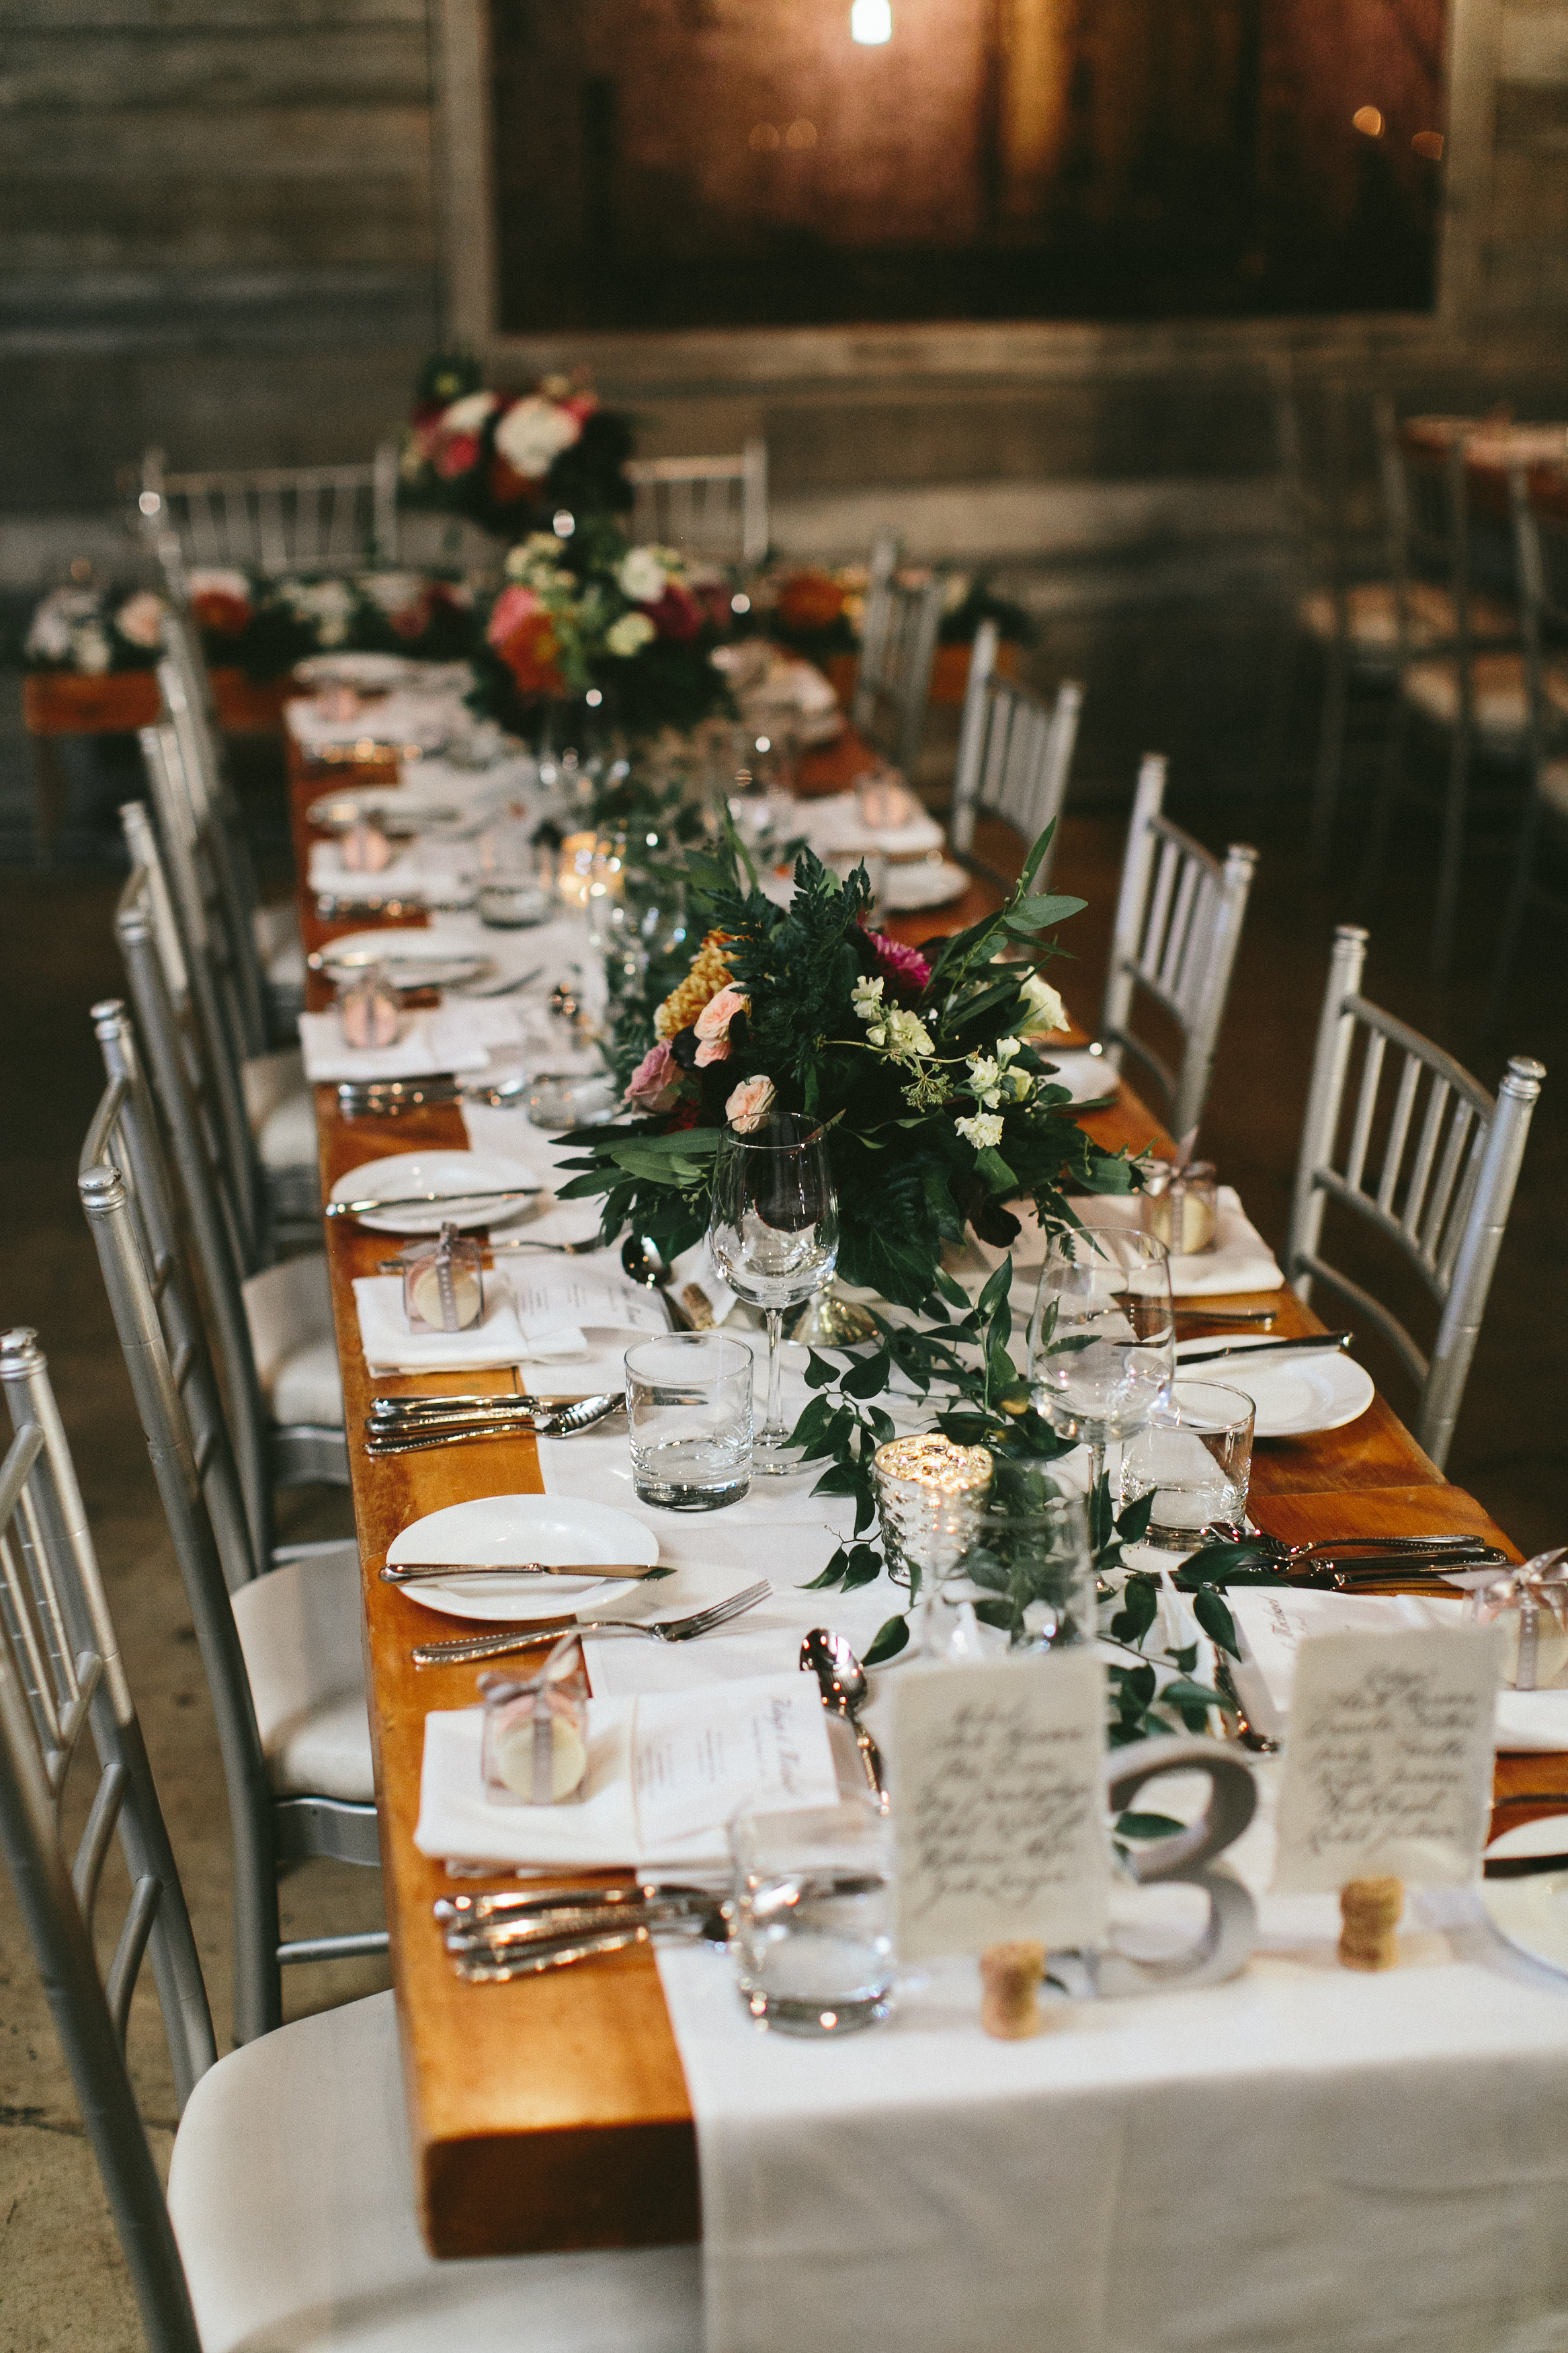 Elegant and Rustic Toronto Wedding in the Distillery District - Garland and centrepieces